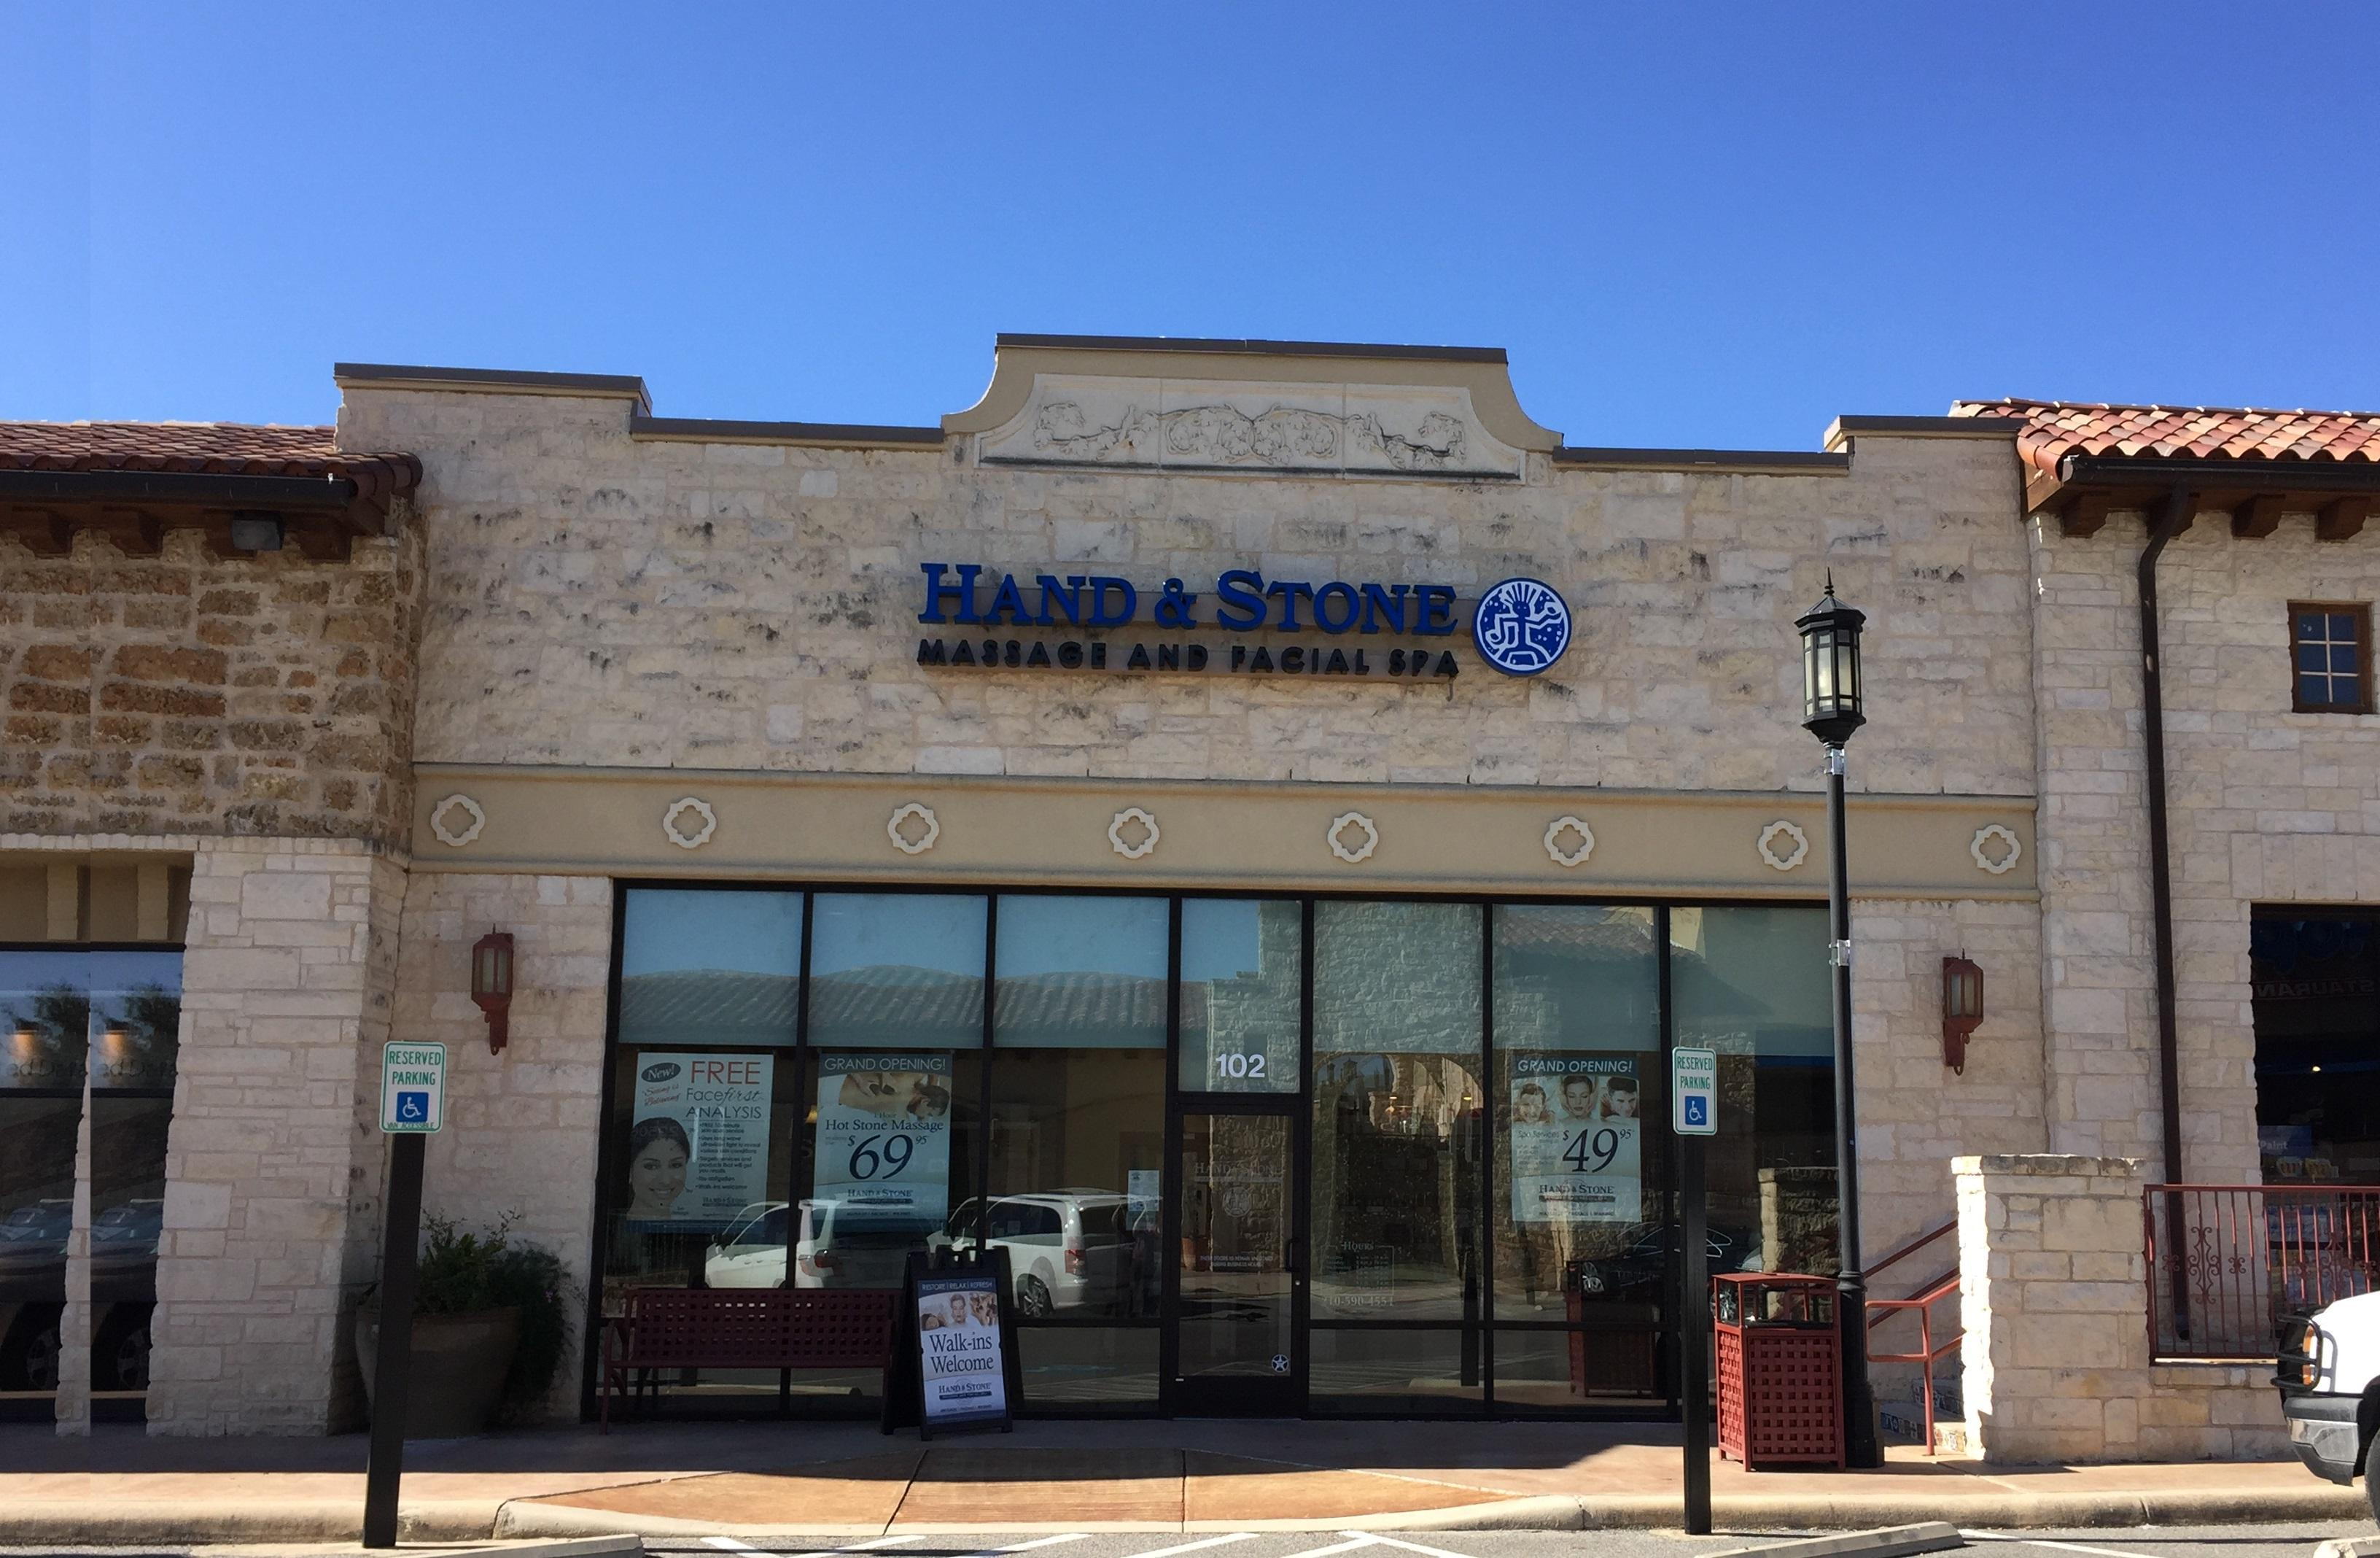 Hand & Stone Massage and Facial Spa (Stone Oak)